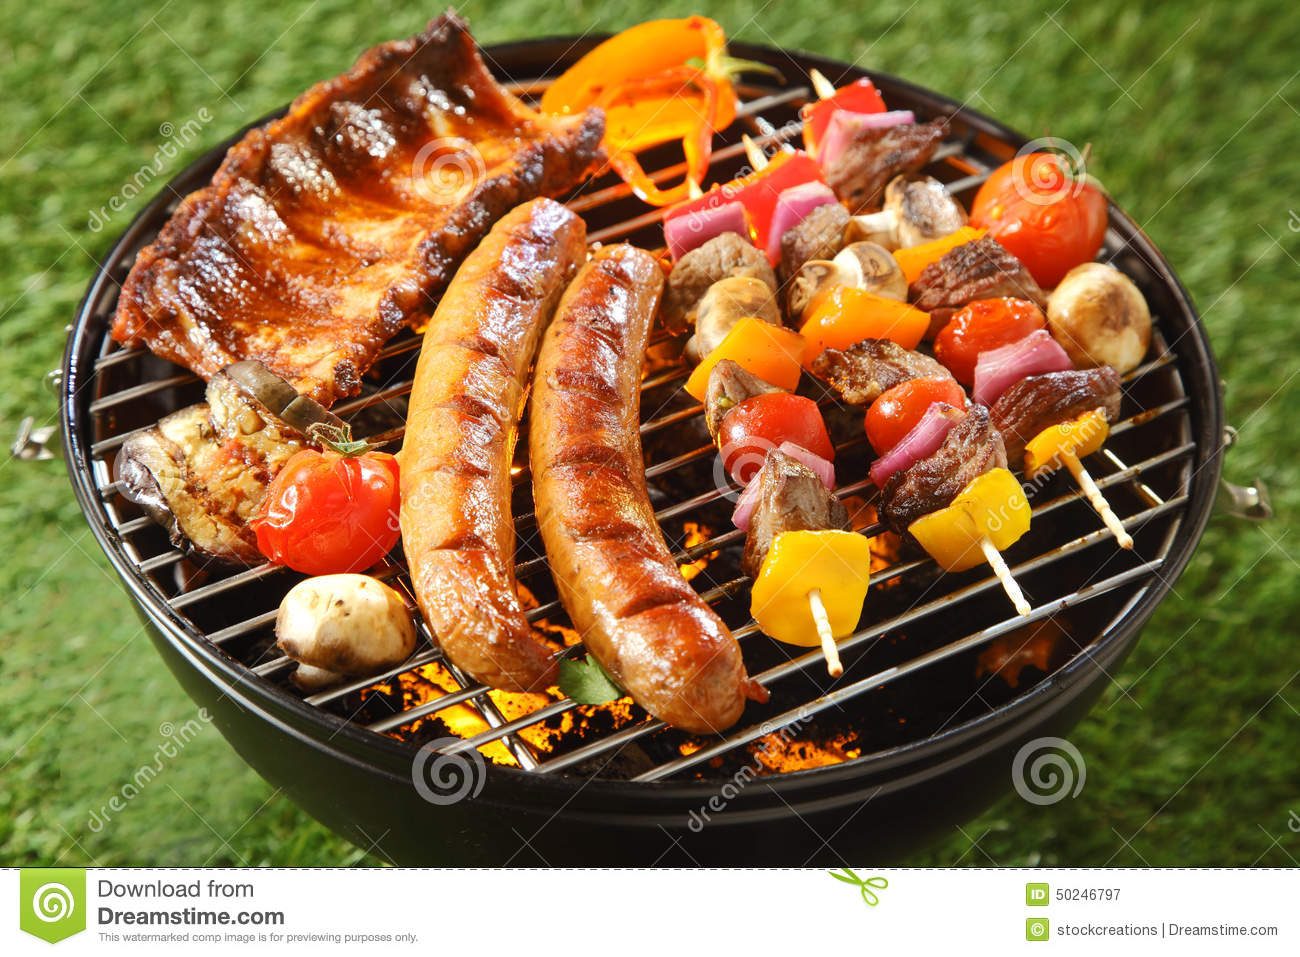 assorted grilled meat on a summer barbecue stock image image 50246797. Black Bedroom Furniture Sets. Home Design Ideas